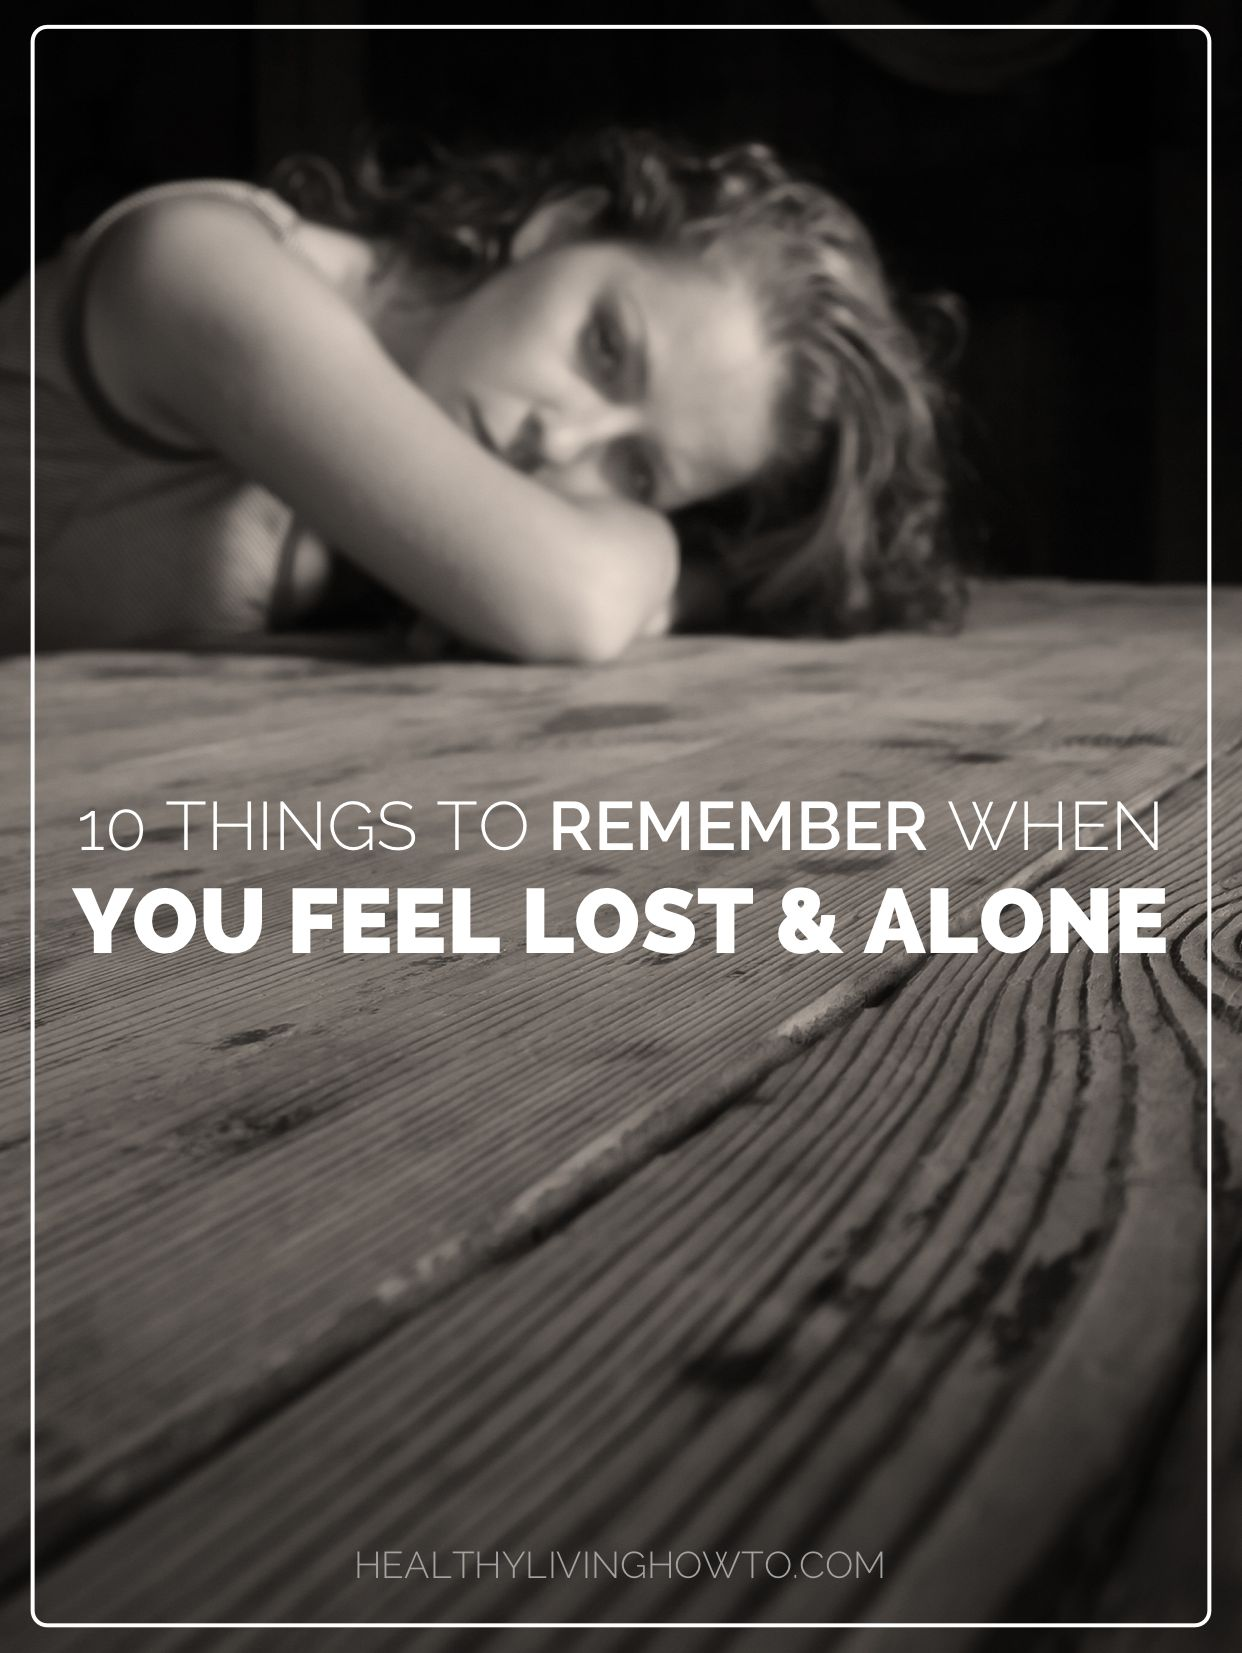 Feeling lost and alone